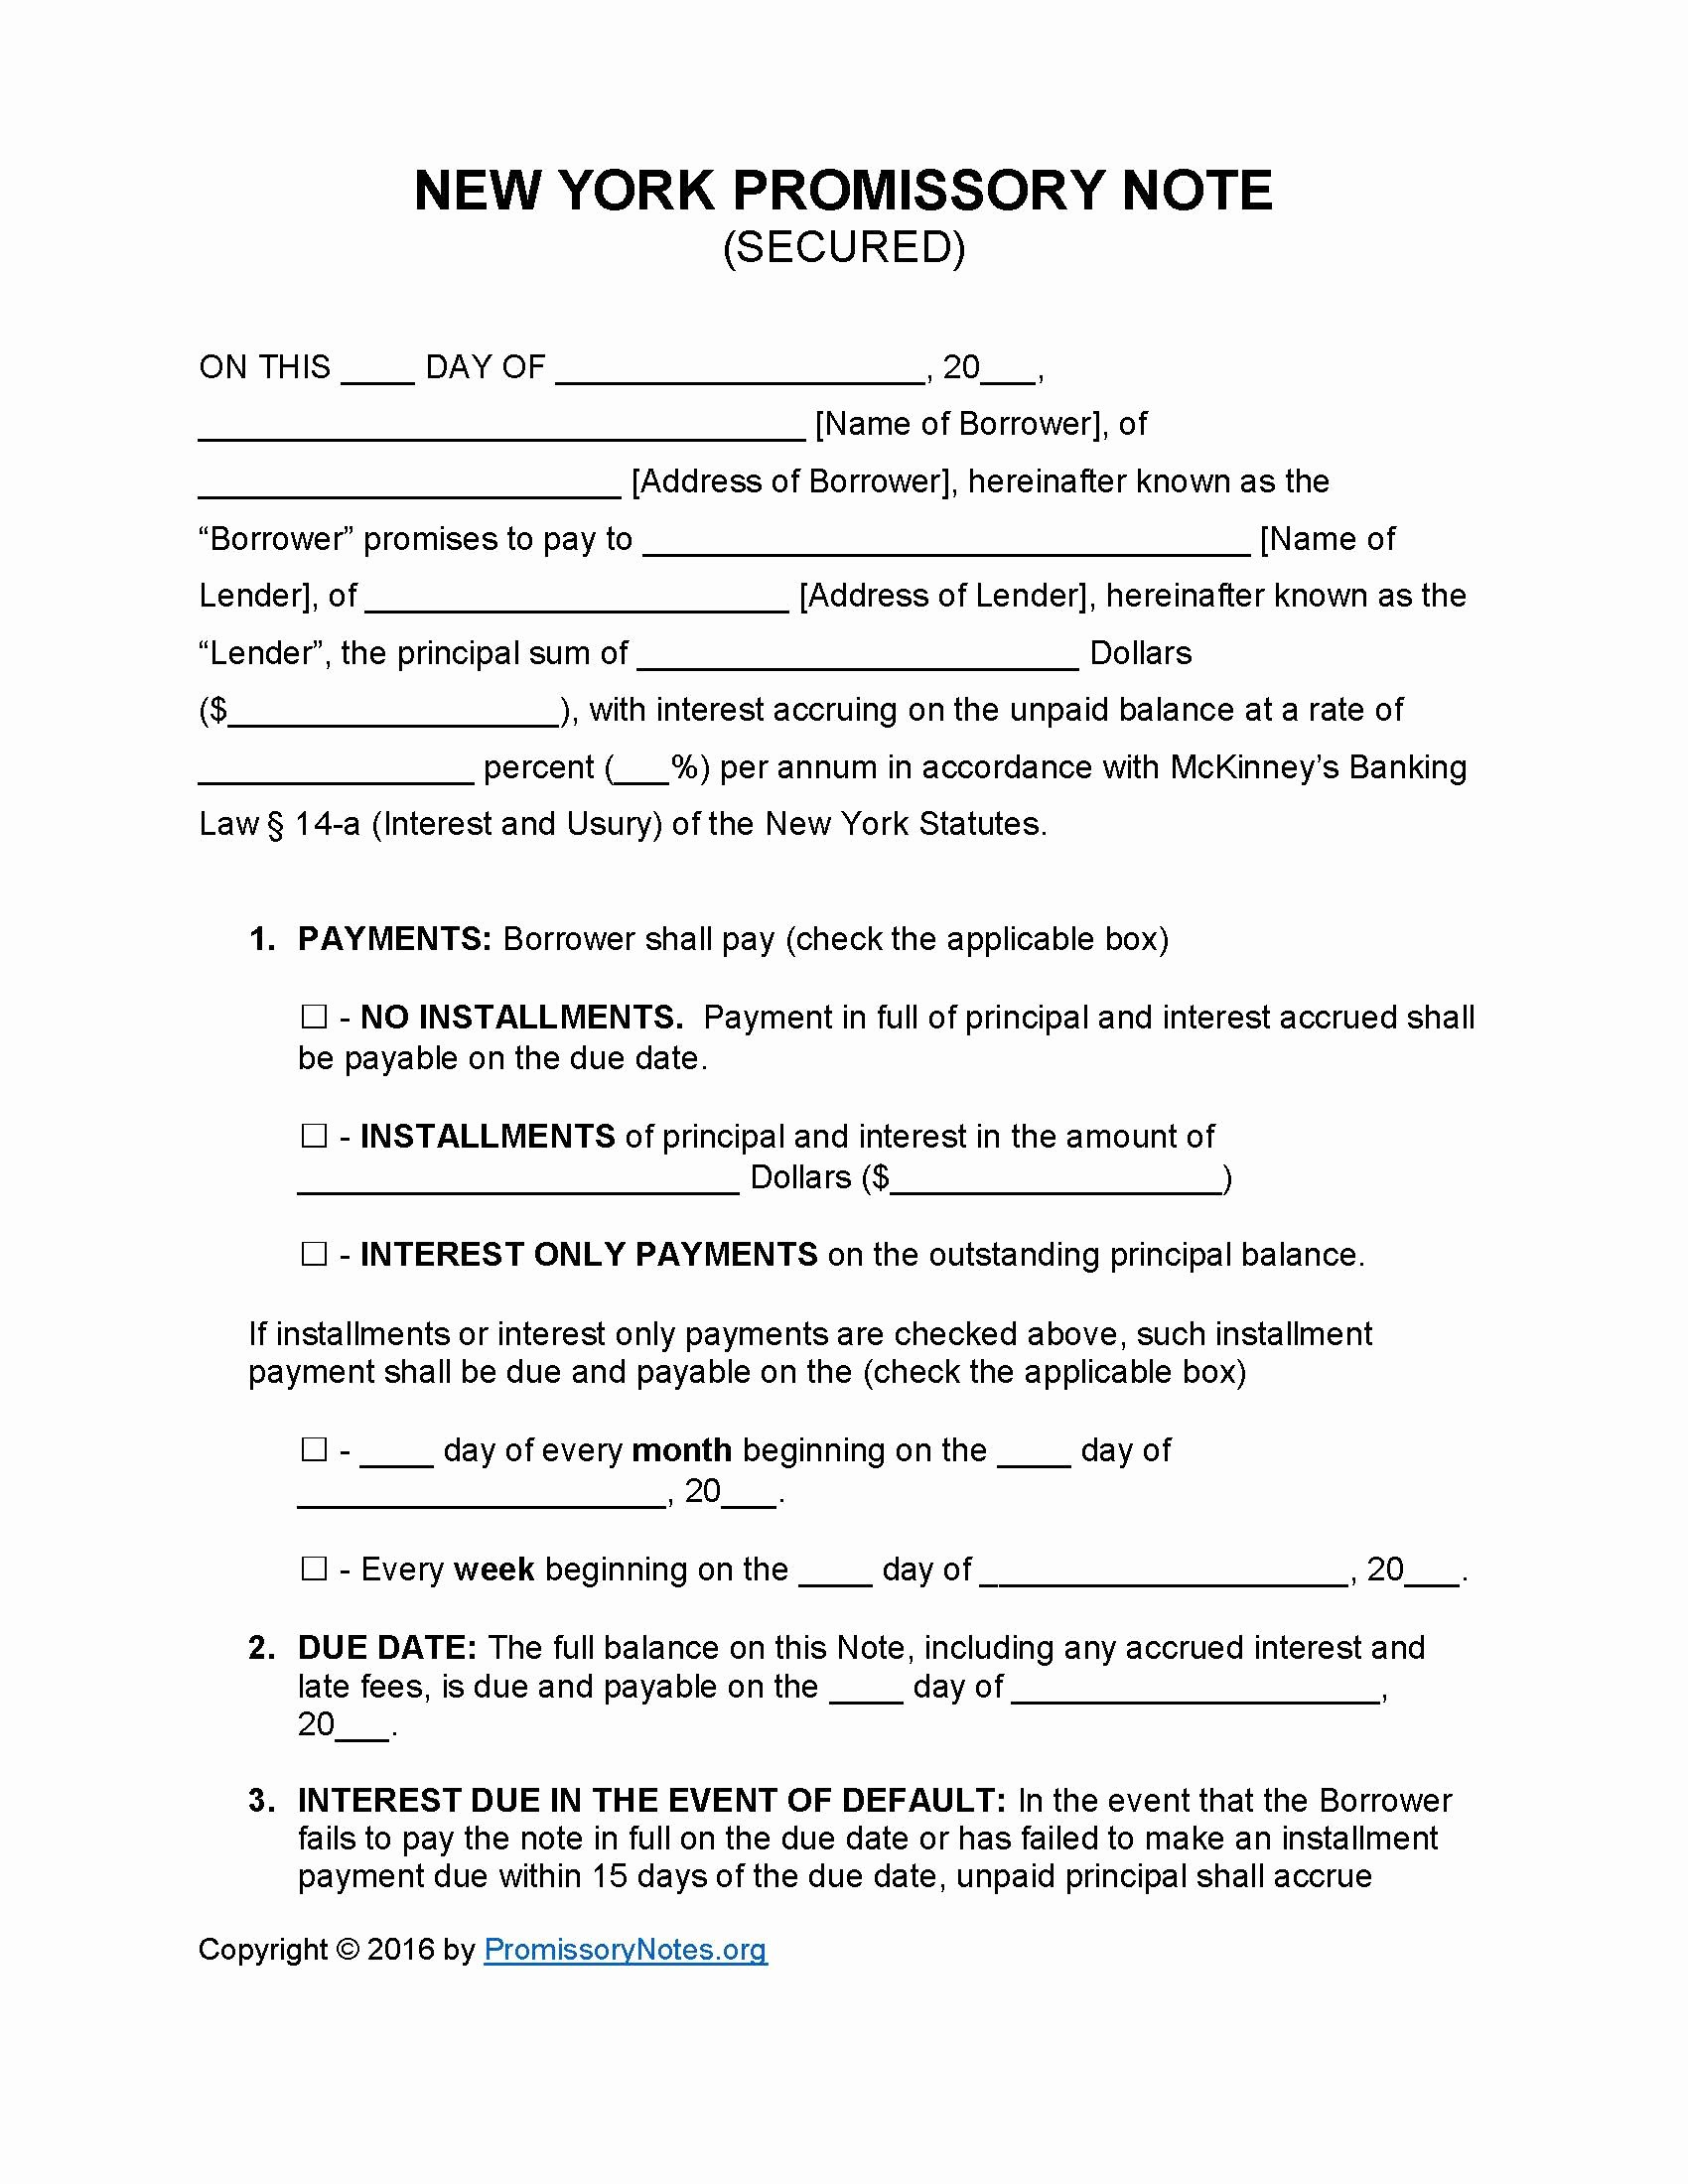 Secured Promissory Note Template Elegant New York Secured Promissory Note Template Promissory Notes Promissory Notes